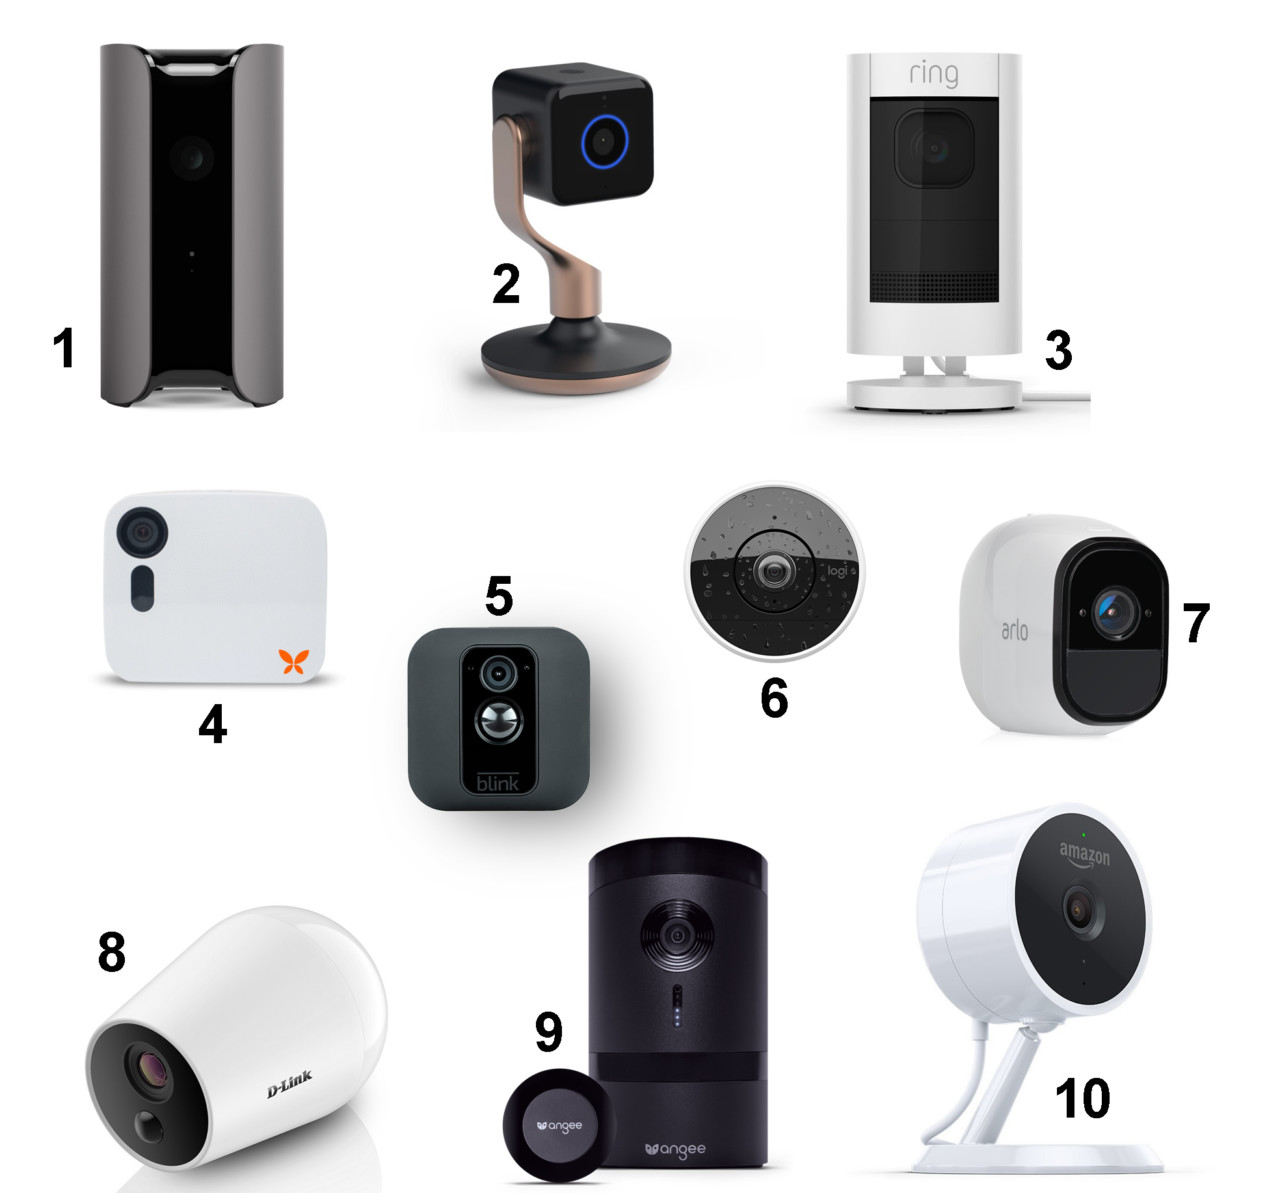 10 Home Security Cameras To Keep An Eye On Your Home ...